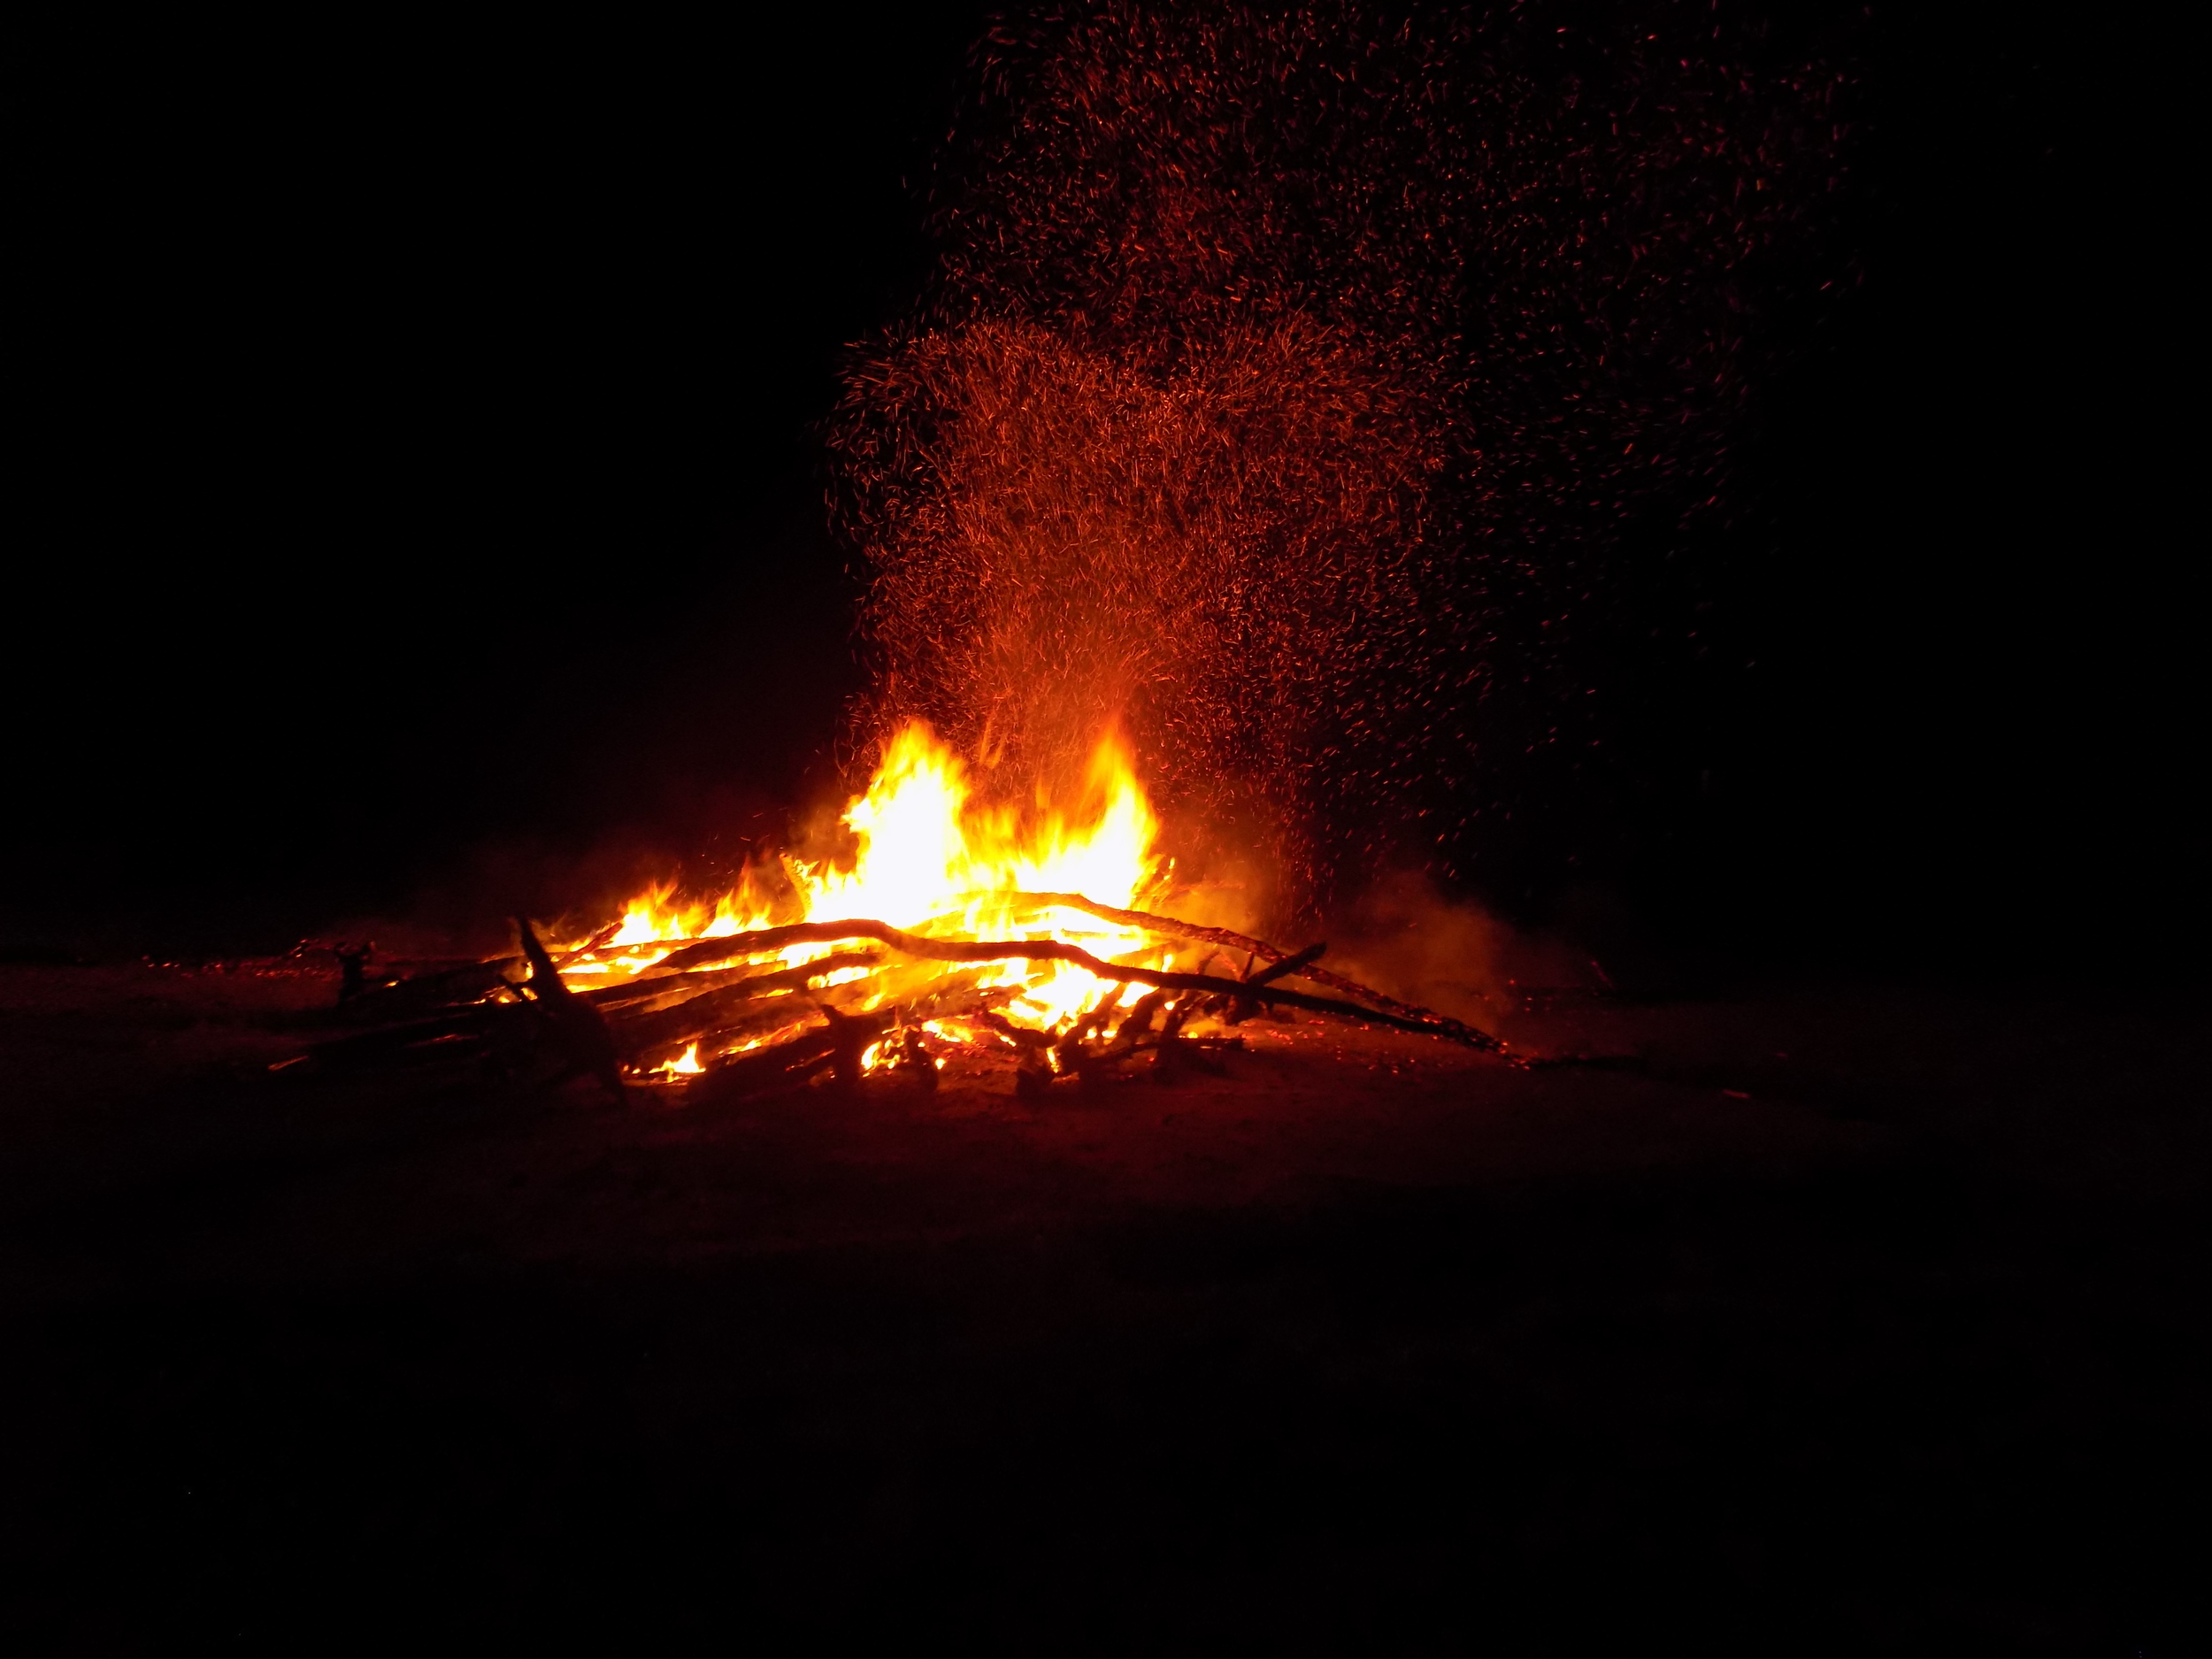 Late-night campfire, part 2